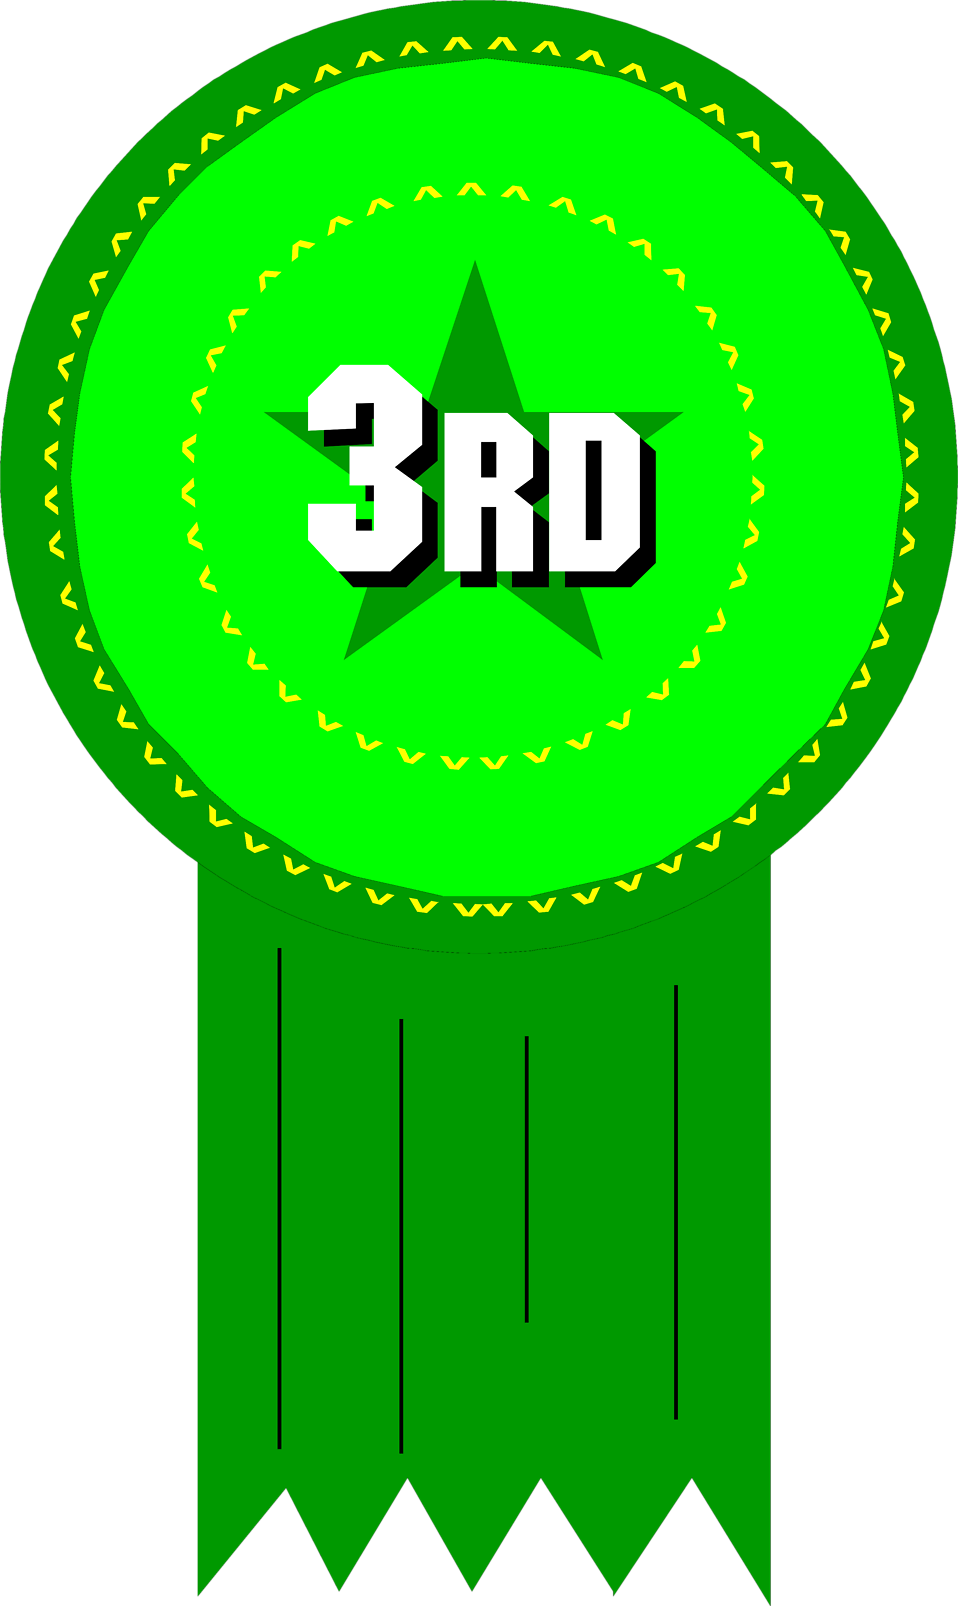 Illustration of 3rd place ribbon : Free Stock Photo